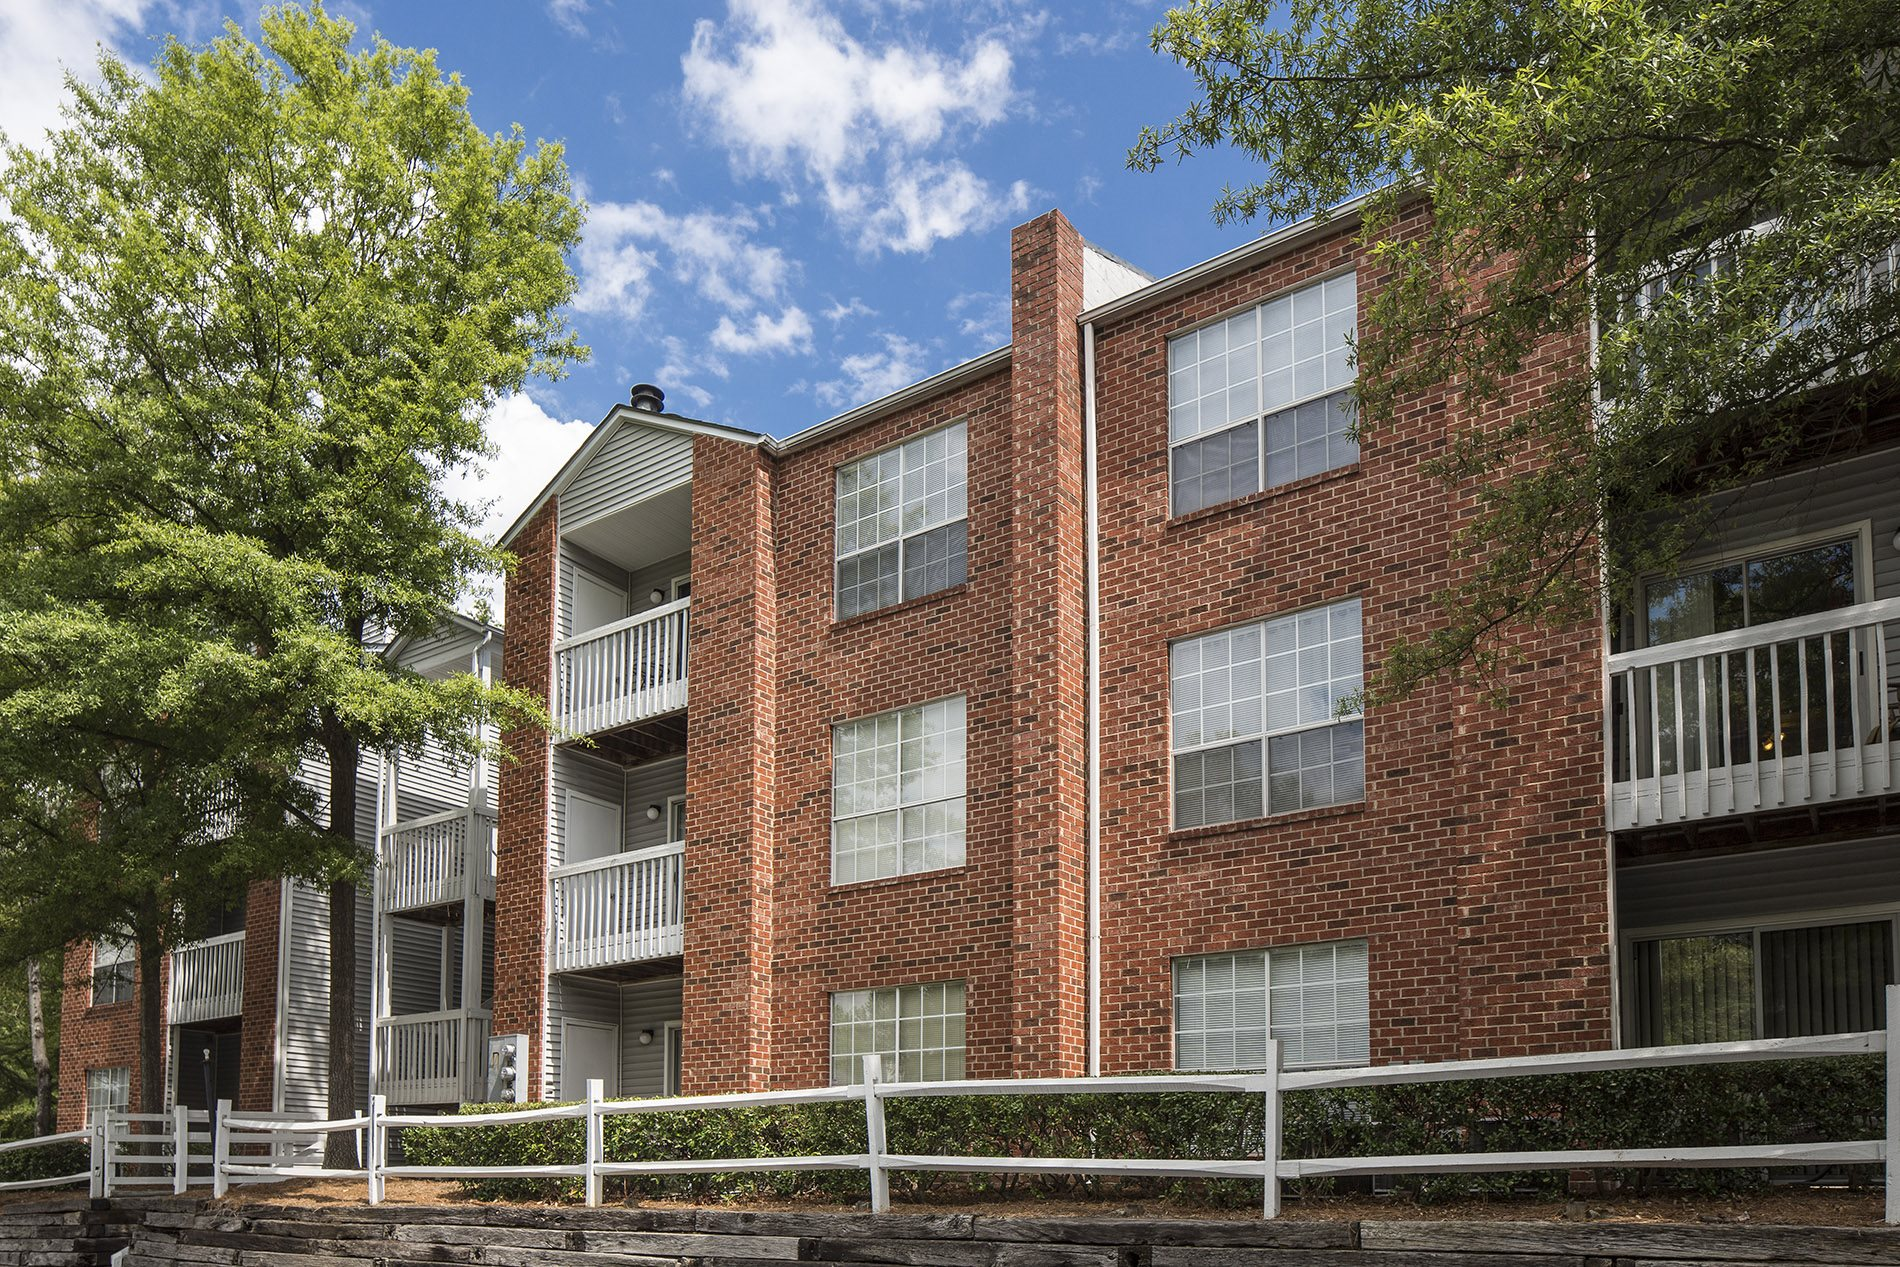 Photos and Video of Hudson Commons Apartments in Charlotte, NC